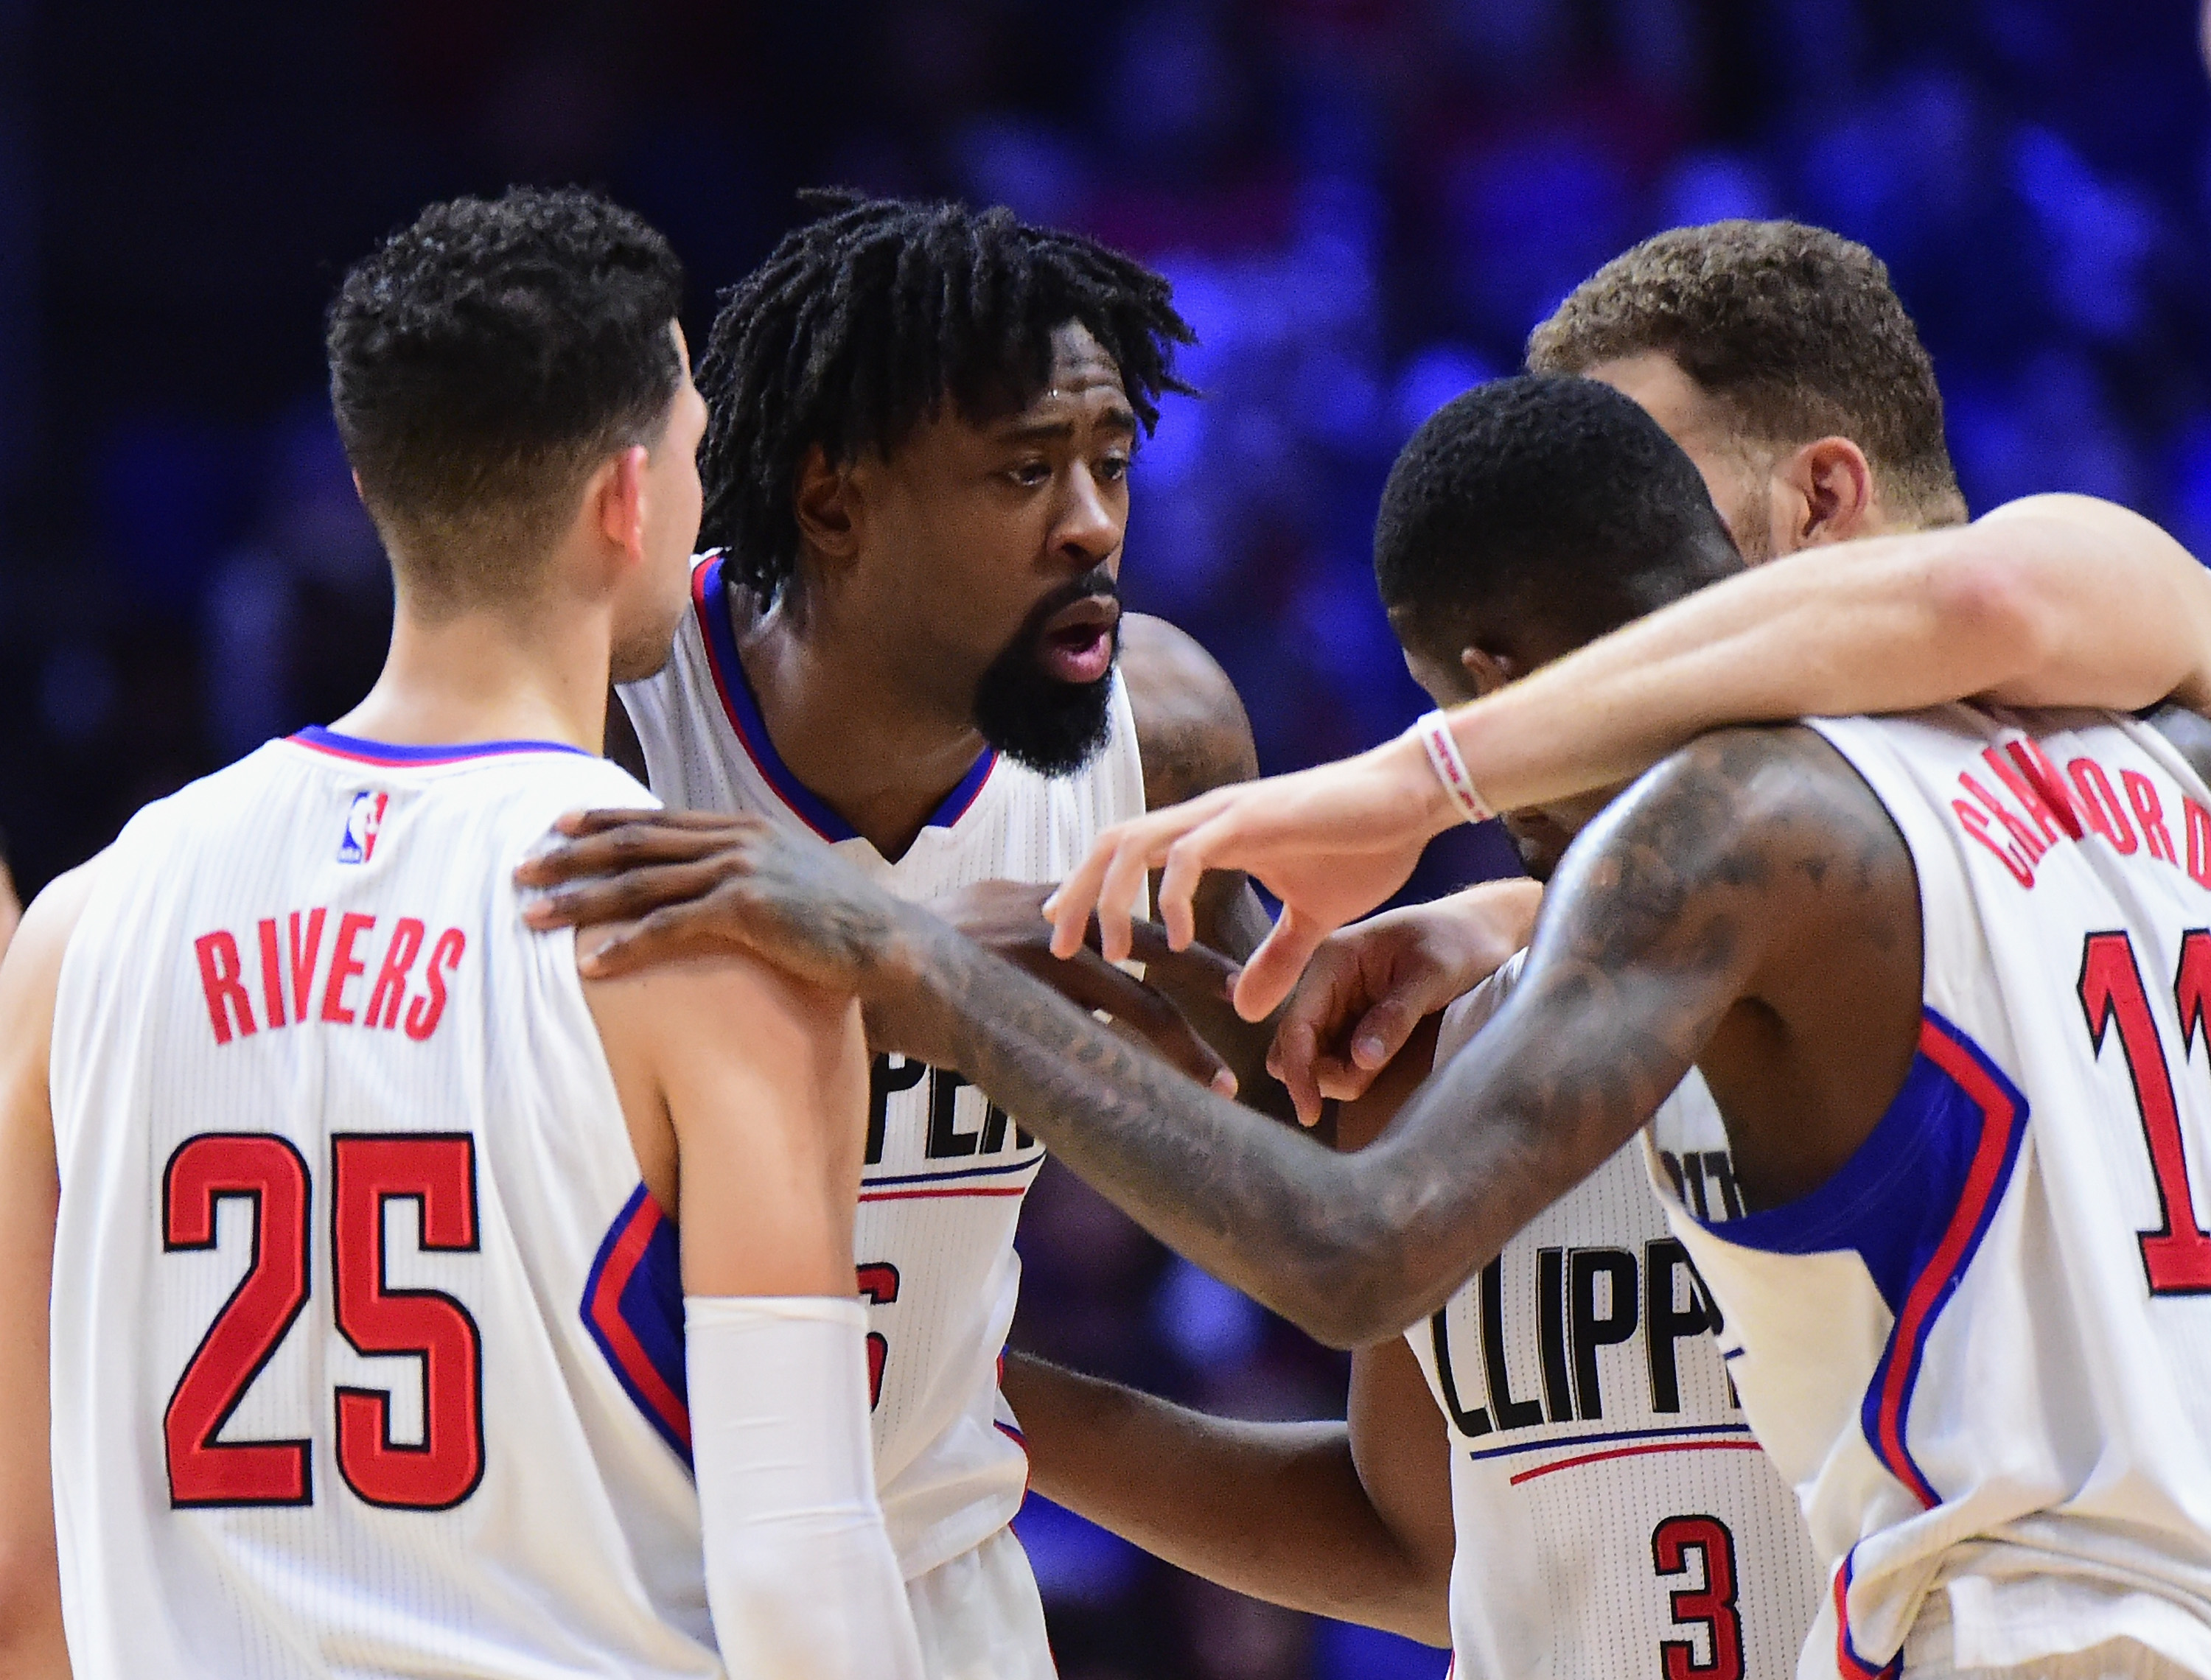 DeAndre Jordan #6 of the LA Clippers speaks to his teammates during a 111-107 loss to the Memphis Grizzlies at Staples Center on November 16, 2016 in Los Angeles, California.